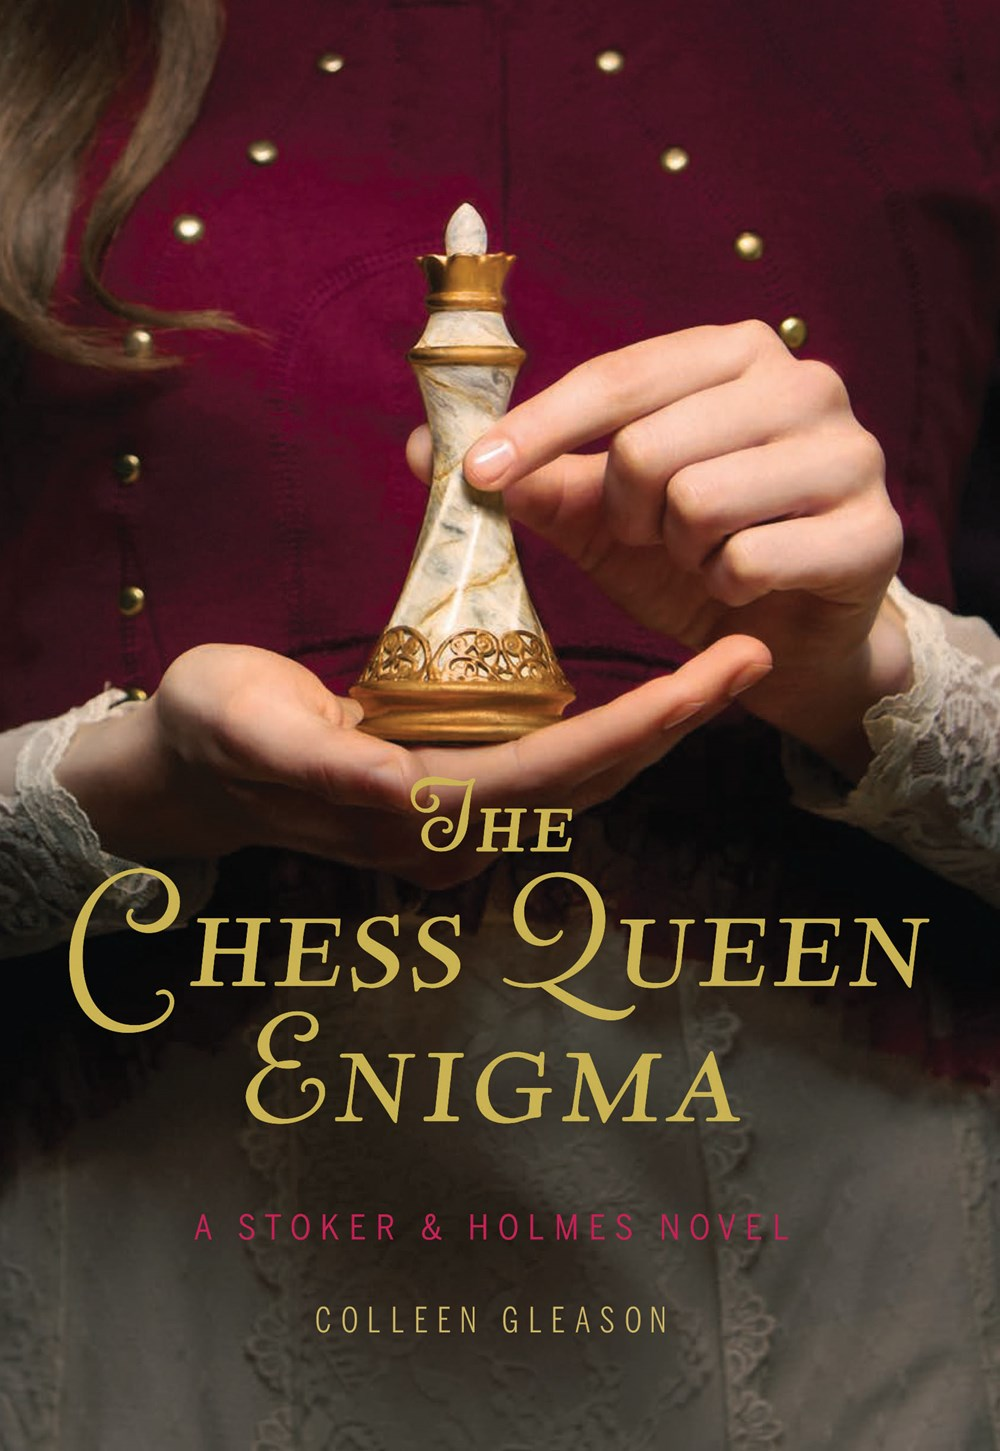 The Chess Queen Enigma by Colleen Gleason Book Cover.jpg